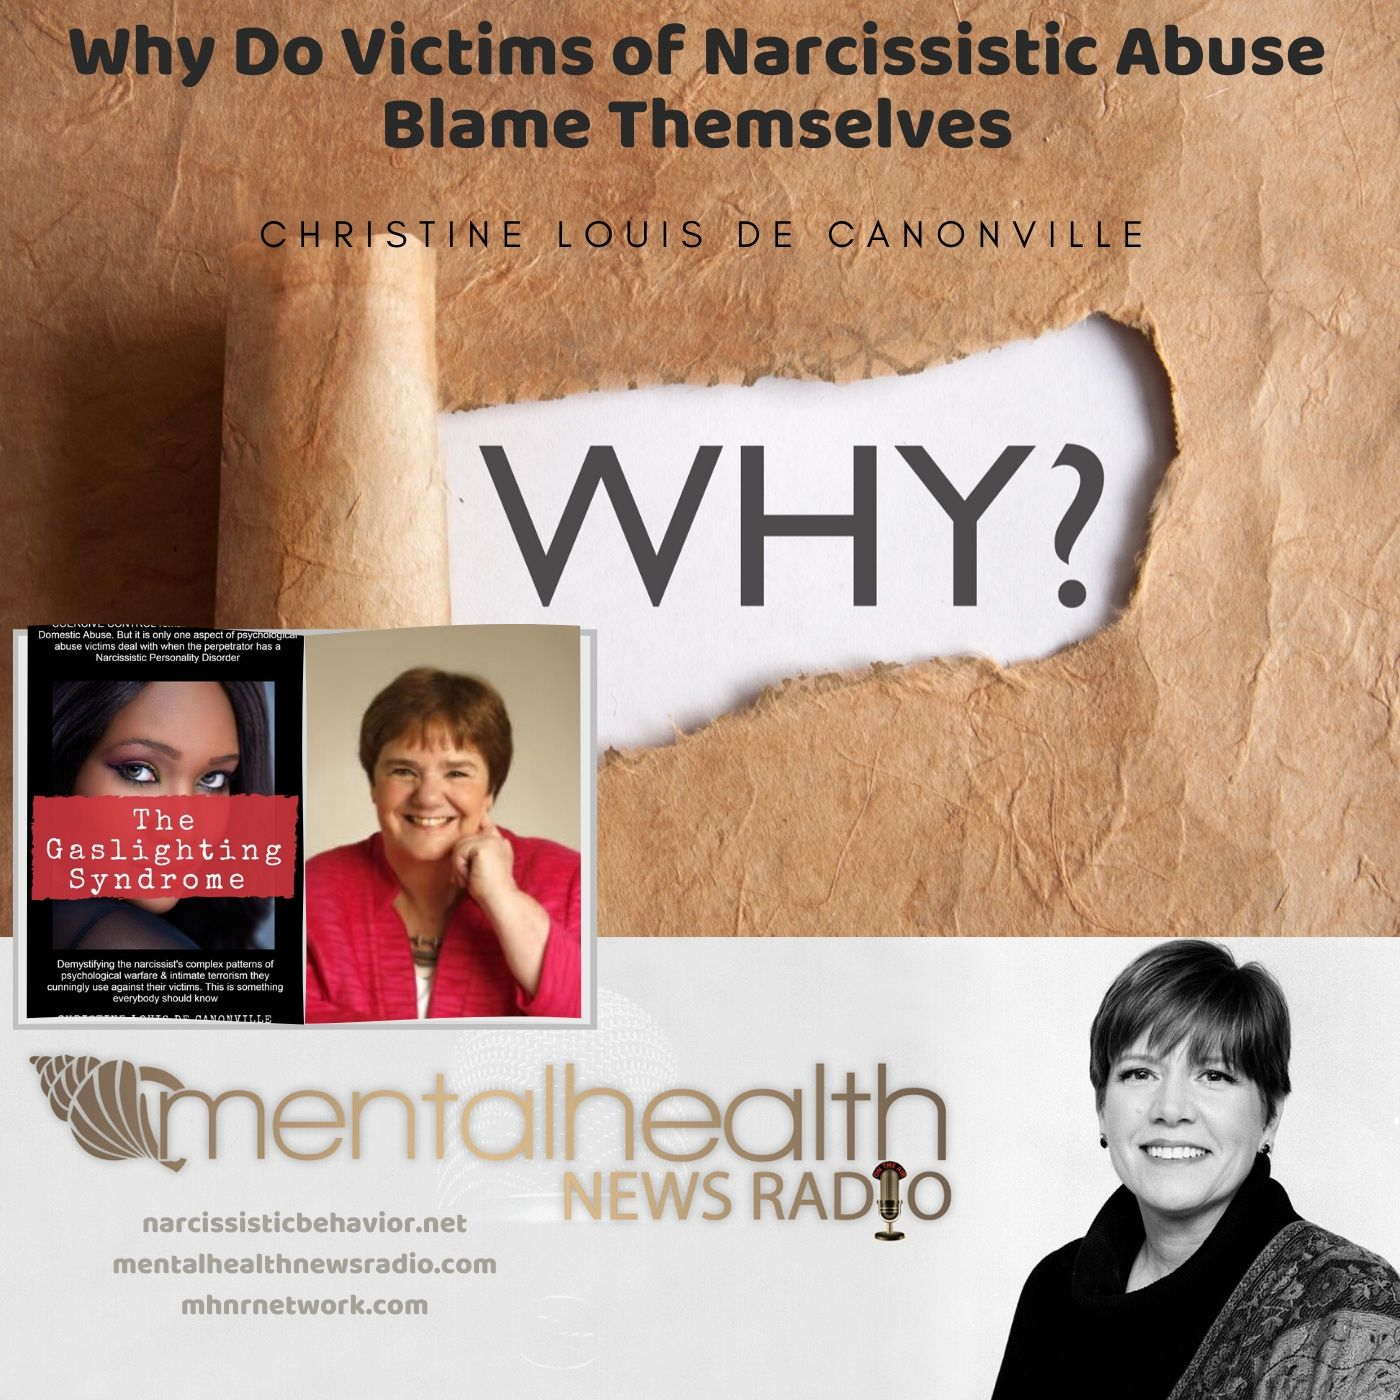 Mental Health News Radio - From the Archives: Why Do Victims of Narcissistic Abuse Blame Themselves